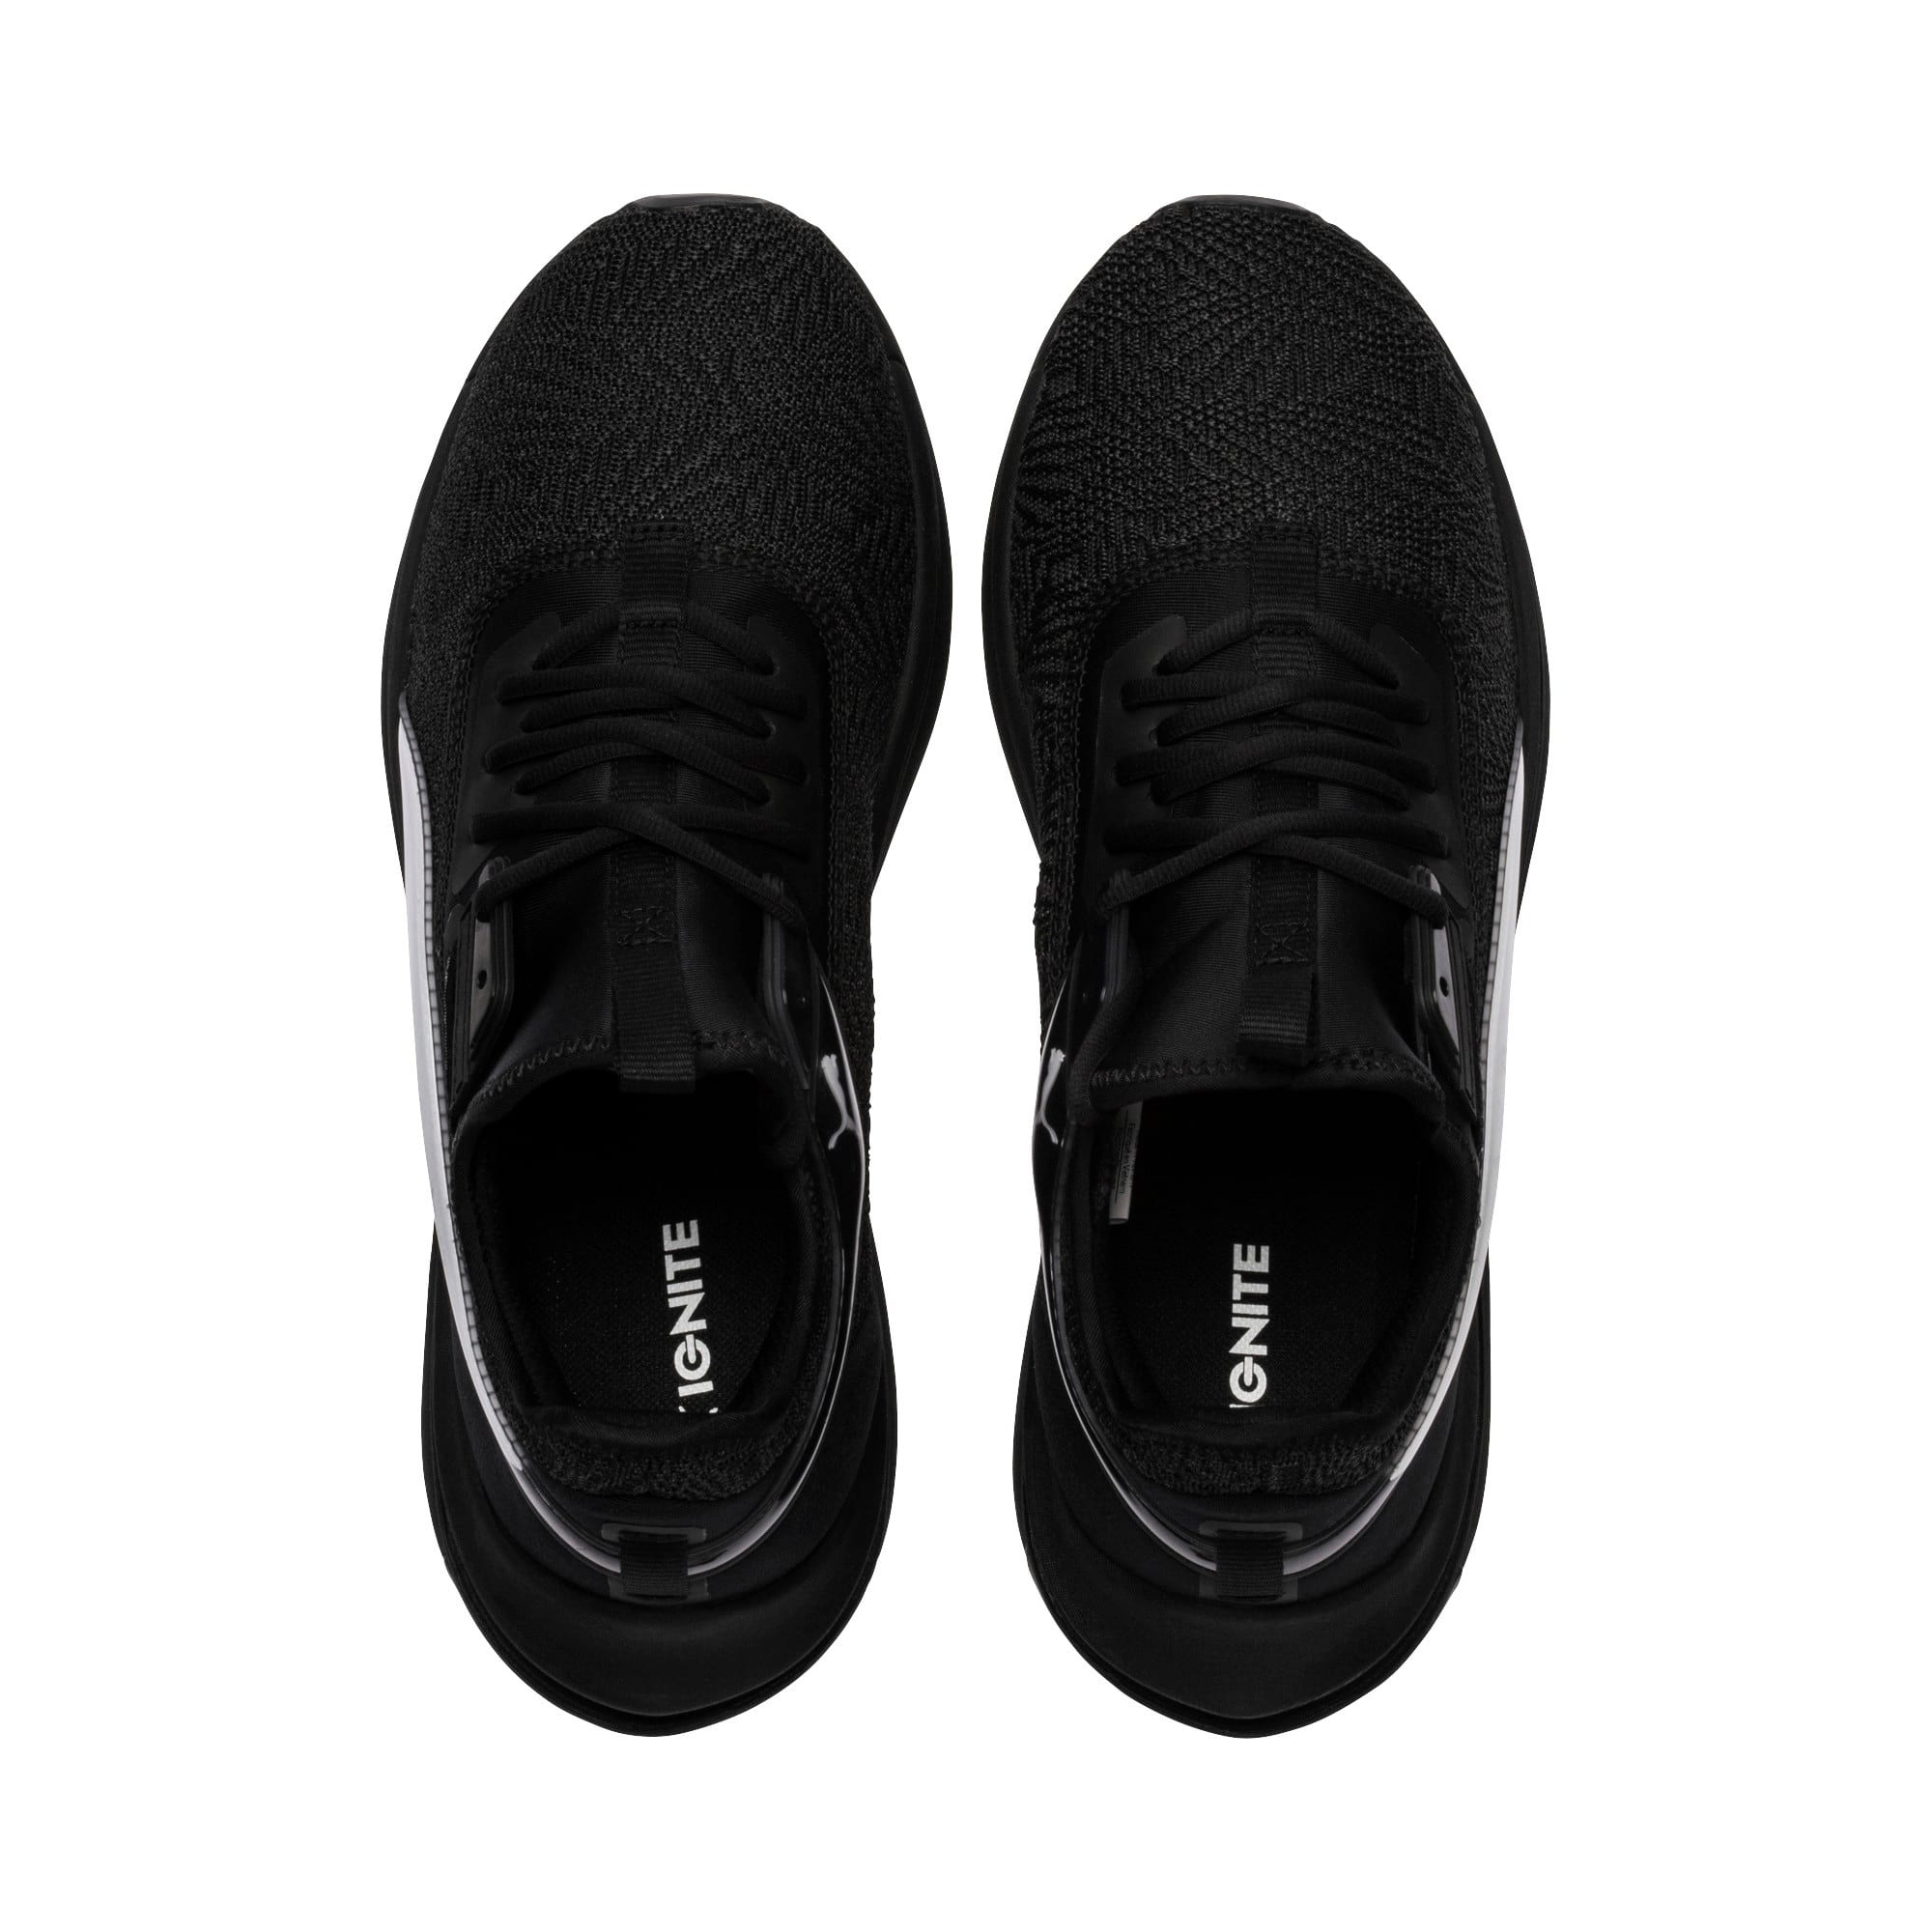 Thumbnail 6 of IGNITE Limitless SR-71 Running Shoes, Puma Black, medium-IND